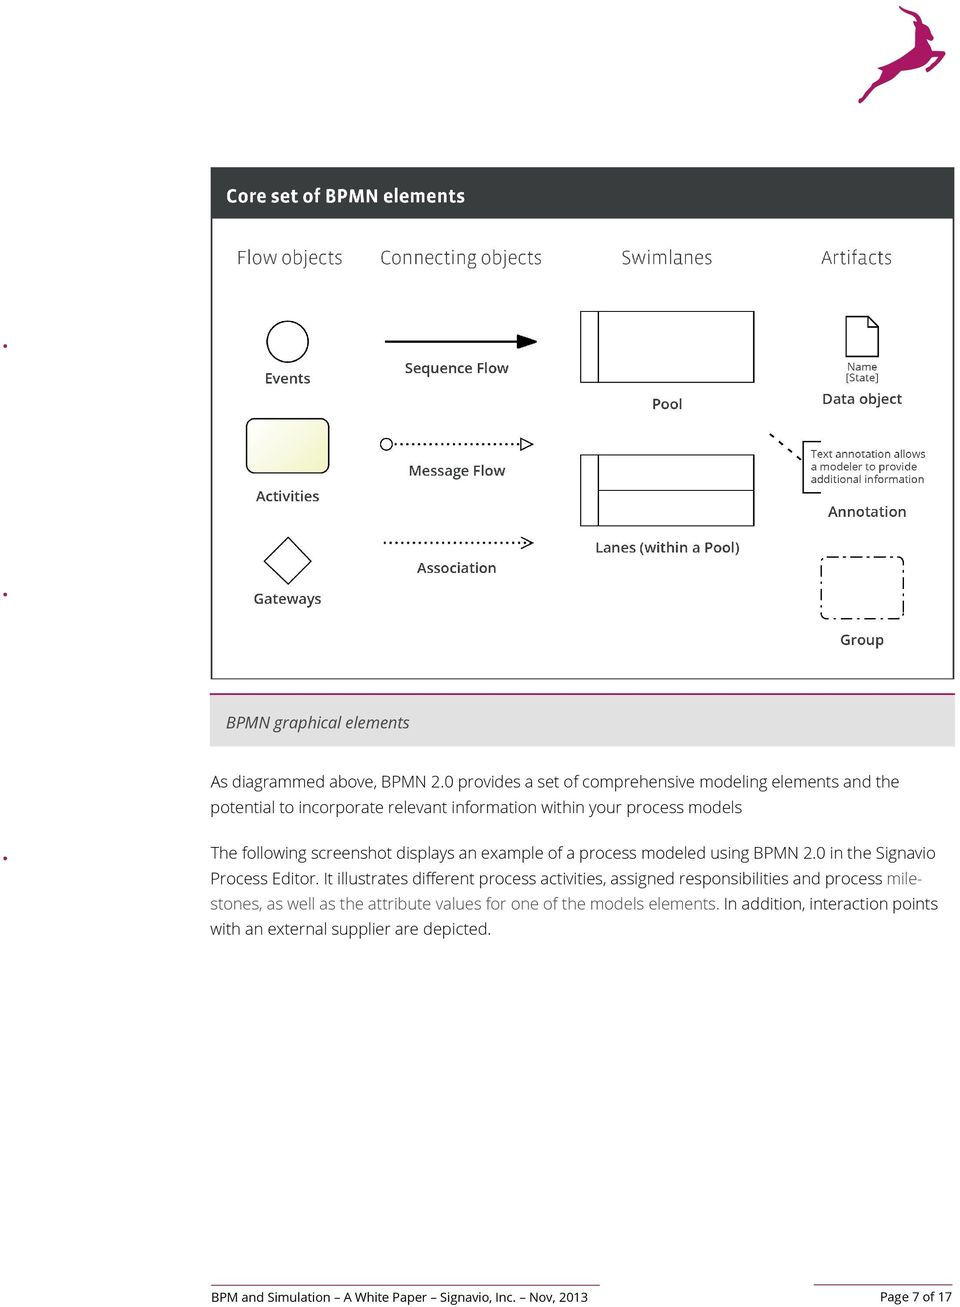 The following screenshot displays an example of a process modeled using BPMN 2.0 in the Signavio Process Editor.